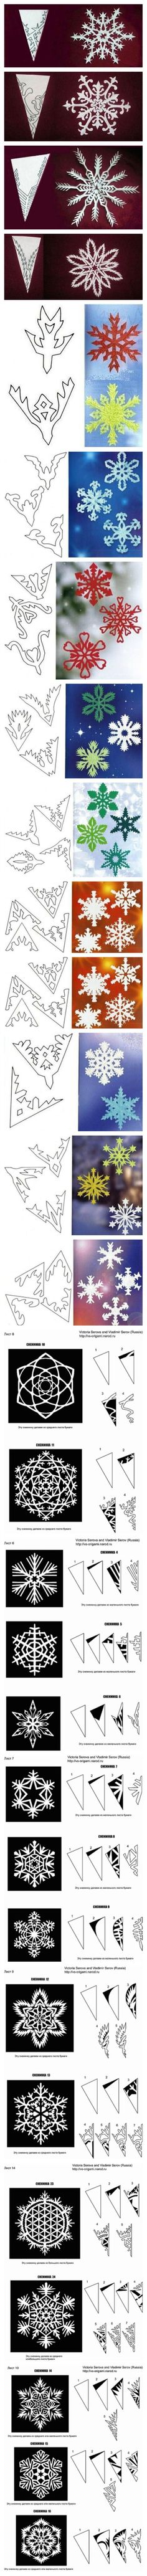 Paper snowflake patterns!!